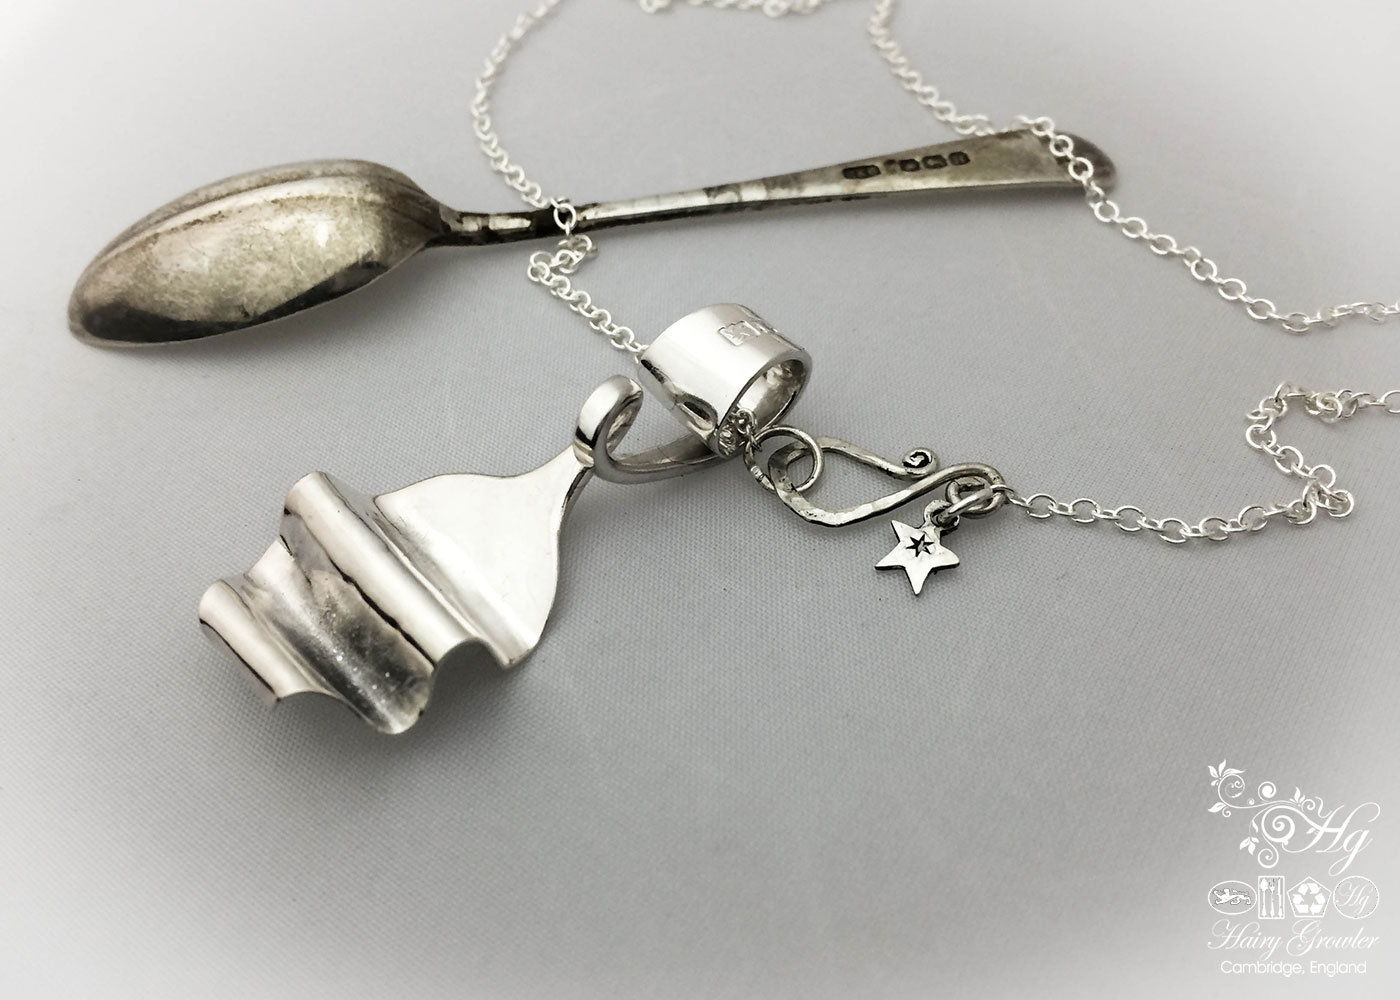 handmade and upcycled sterling silver teaspoon necklace pendant